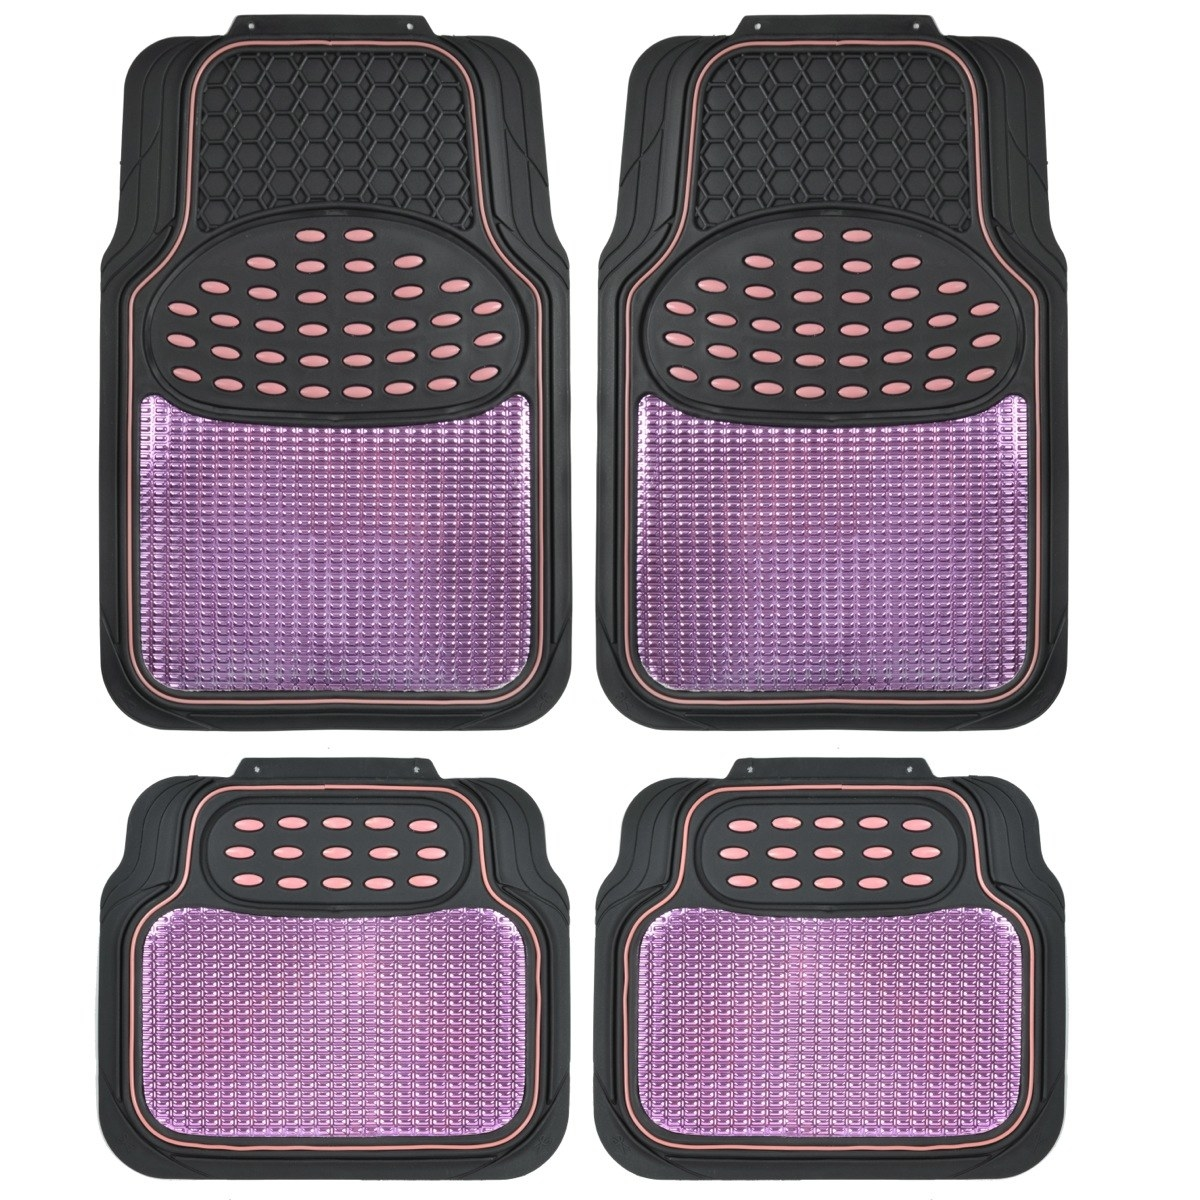 four pink car mats to place on the bottom of your car